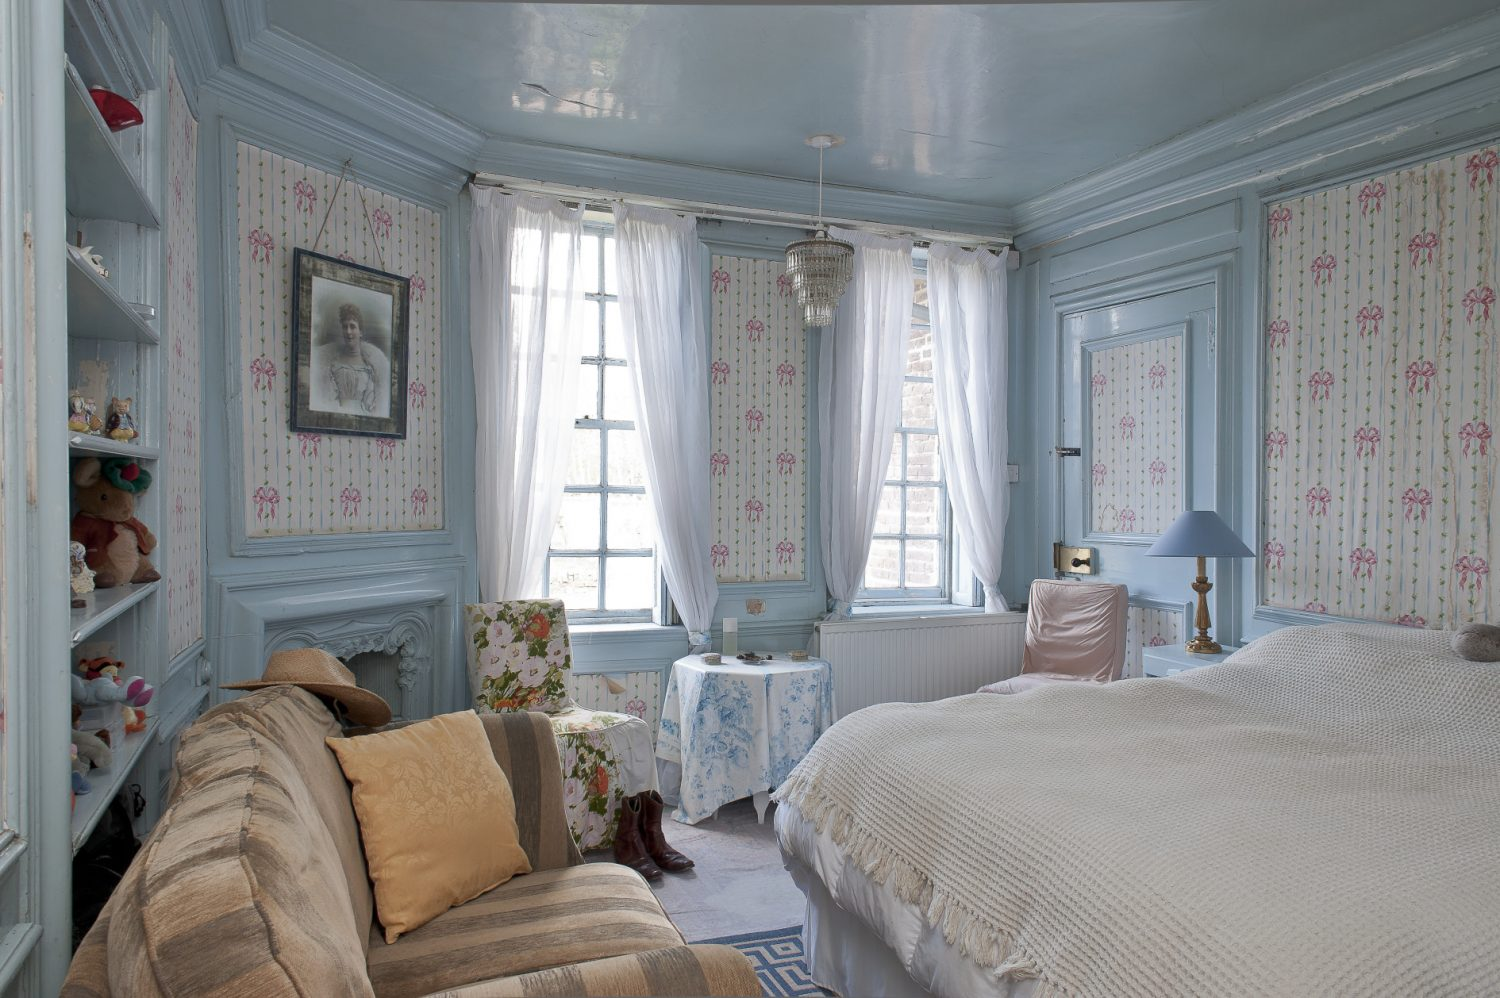 Olga's old night nursery is an almost perfect capsule of late 19th century interior design, the woodwork on the panelled walls is painted pale powder blue and in between, the wallpaper features tiny yellow rosebuds with pink ribbons running between them